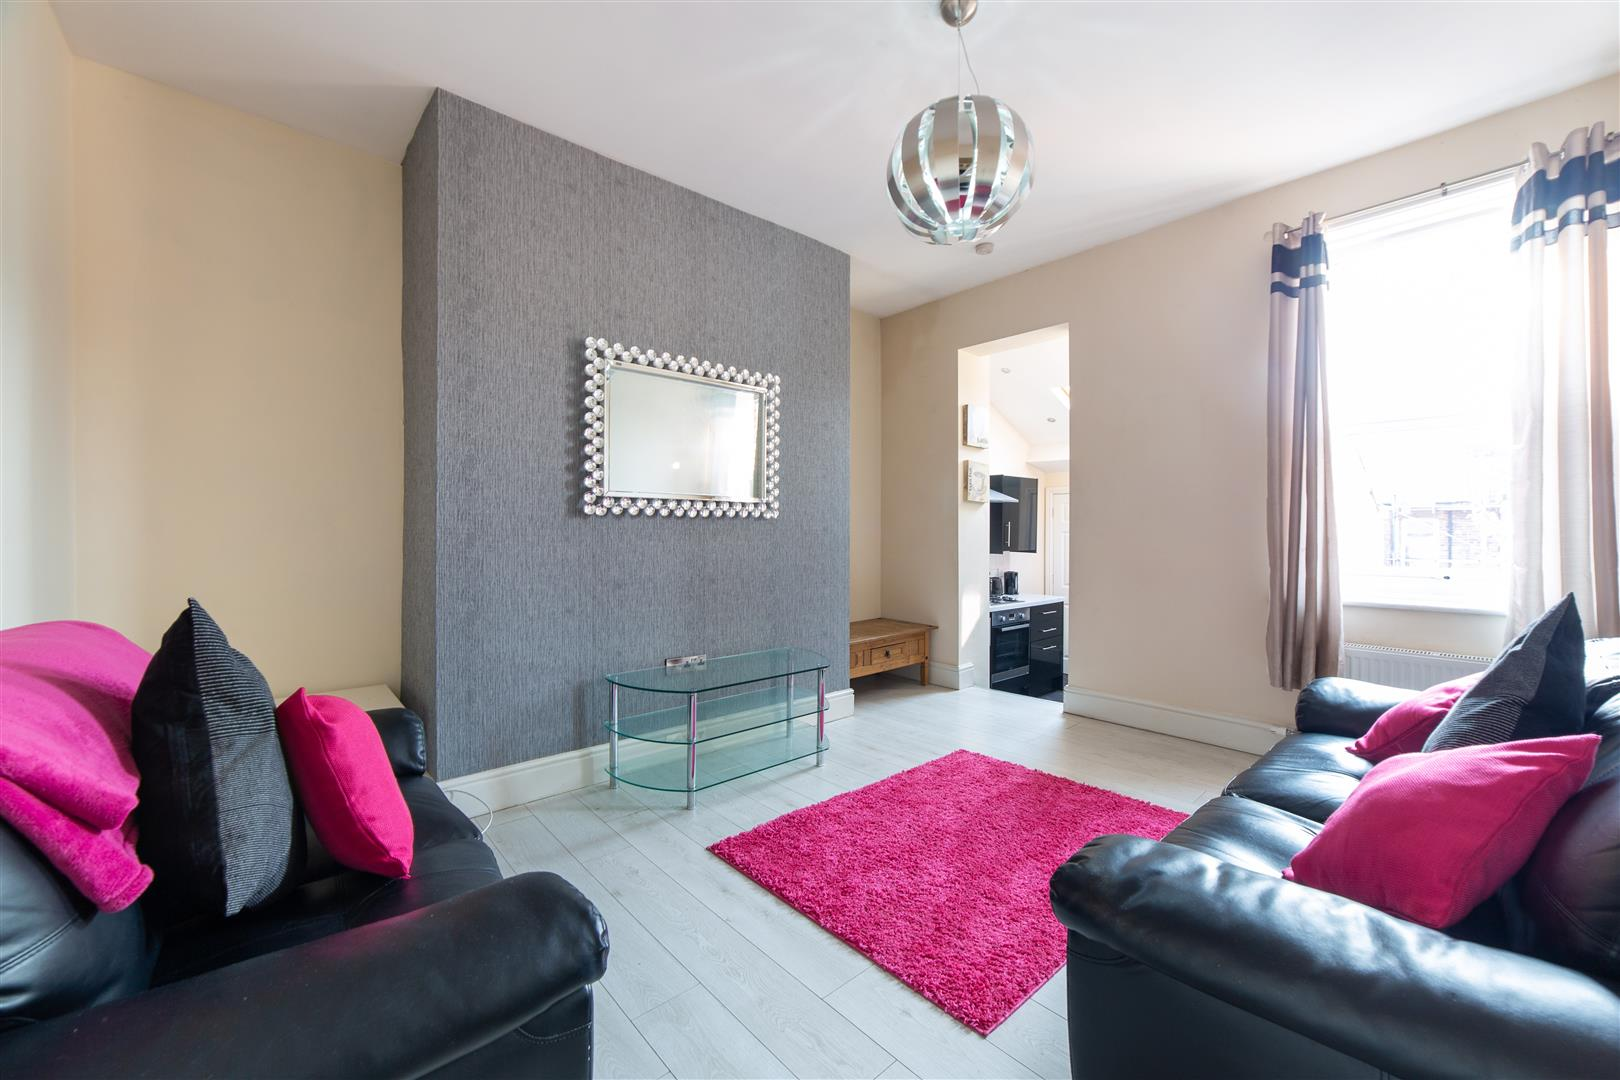 3 bed flat to rent in Newcastle Upon Tyne, NE6 5LU 0